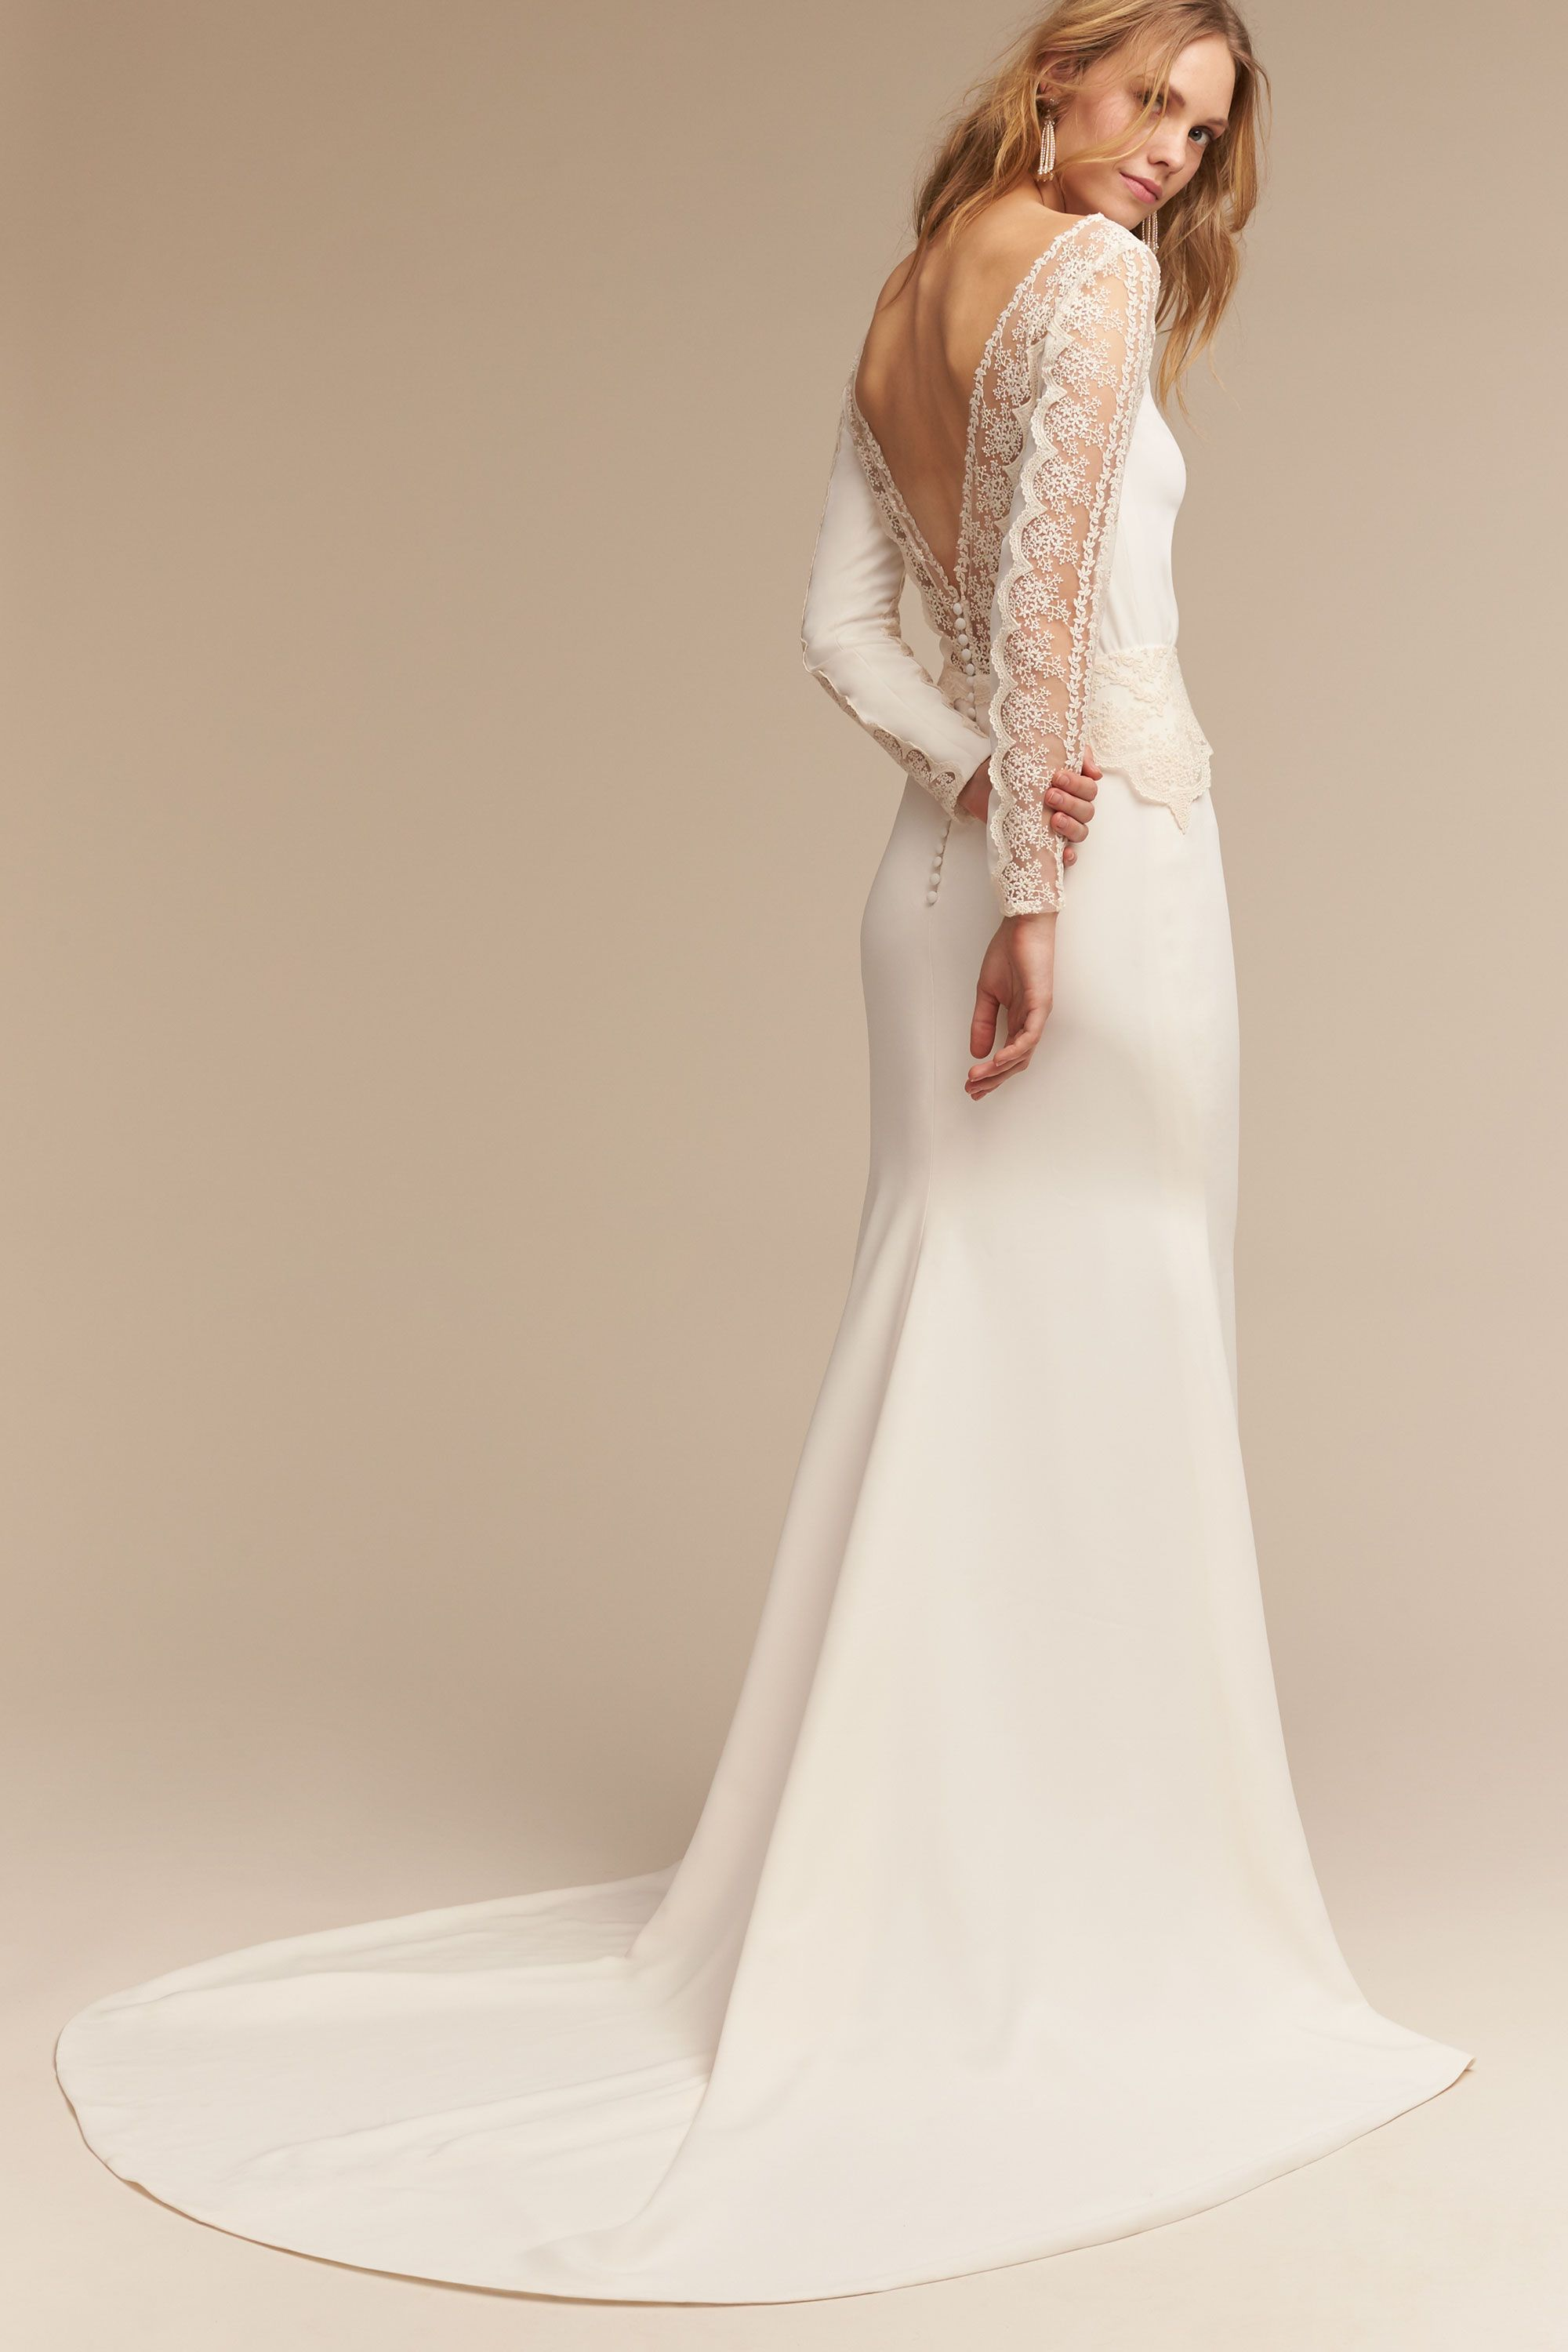 Wedding Wedding Dresses With Sleeves wedding dresses with sleeves long lace cap sleeve bhldn sol gown gown